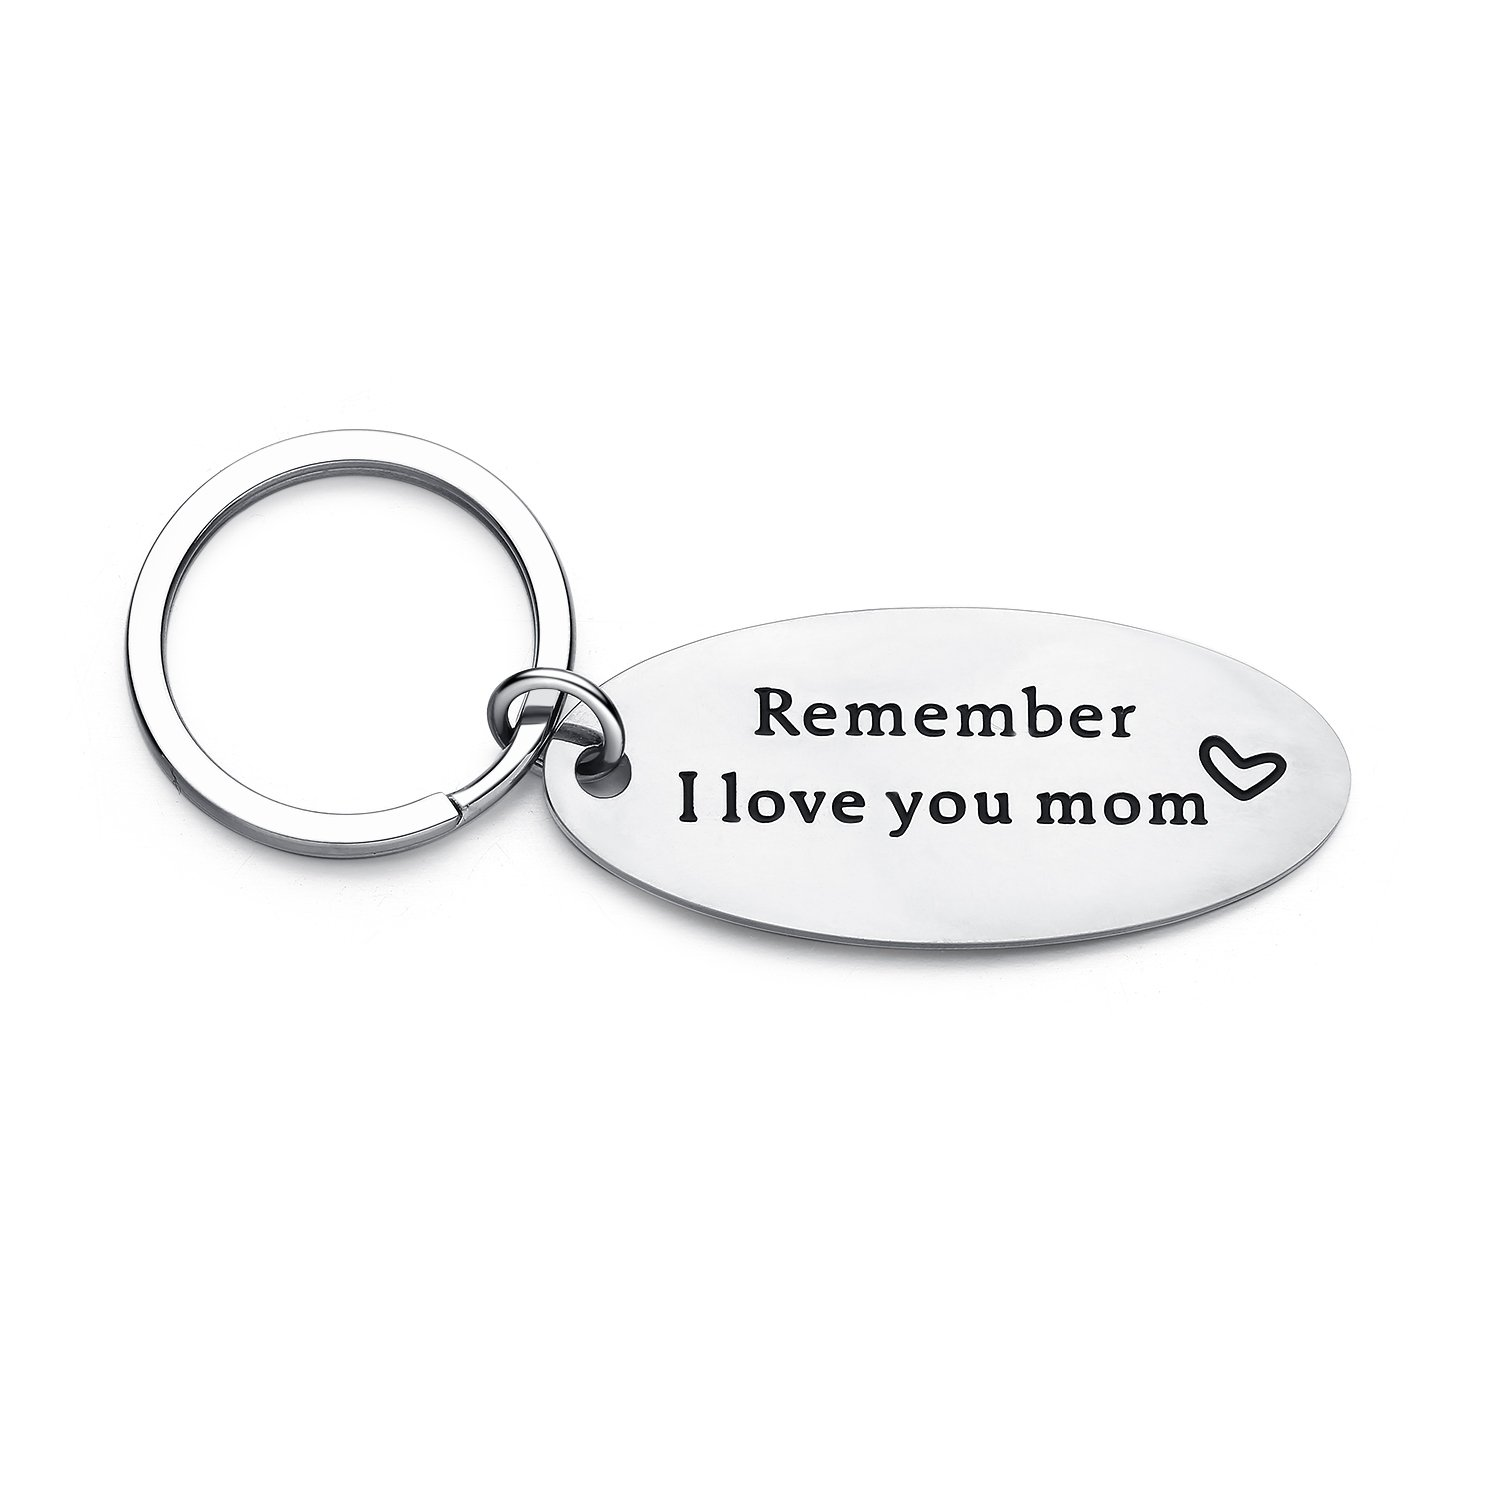 Simple Gift For Mom Granpha Mothers Day Gift Idea Keychain With